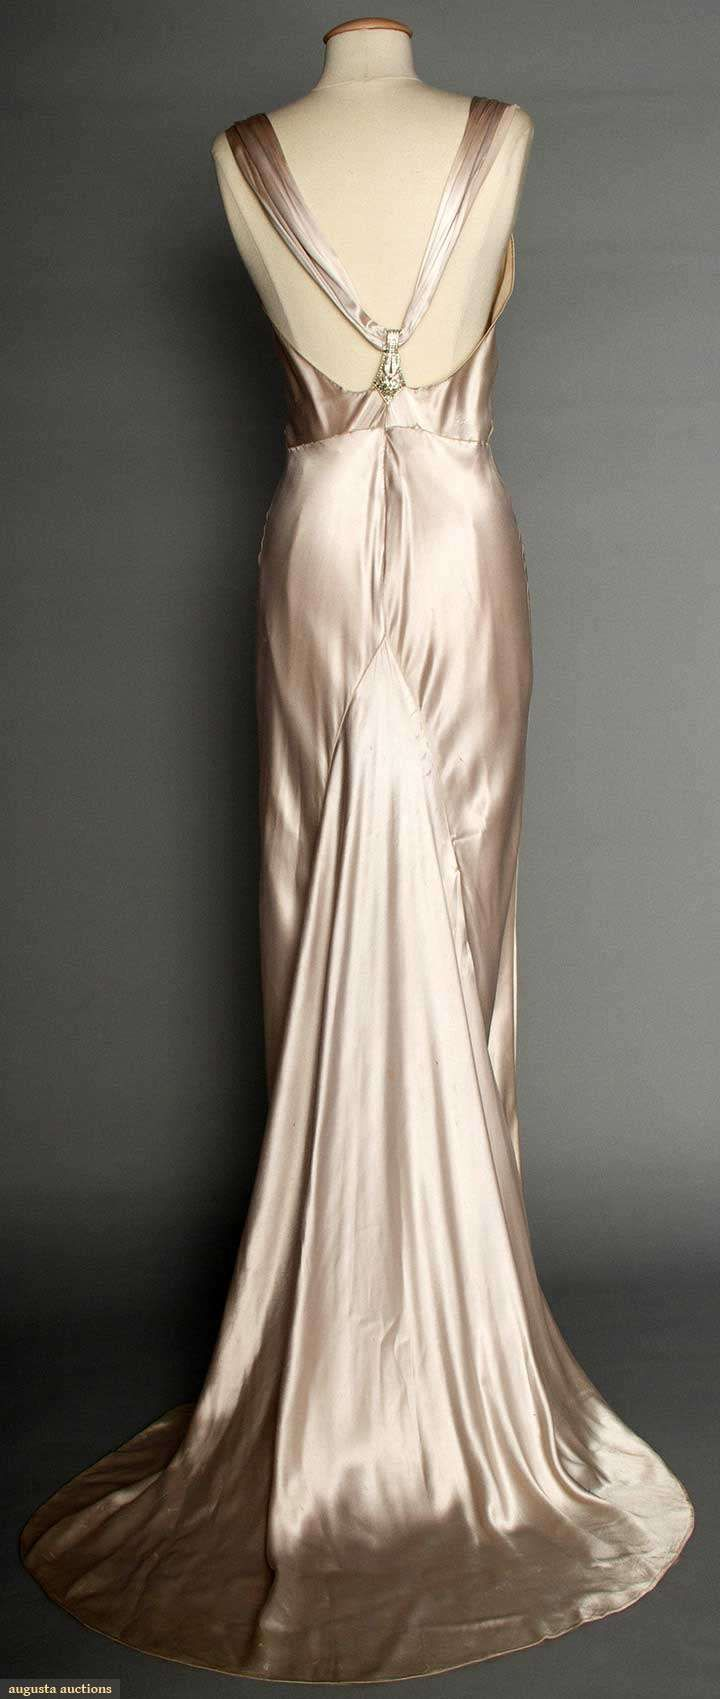 1930 wedding dress  Why Construction Matters or Not Looking Like a Piece of Your Skirt